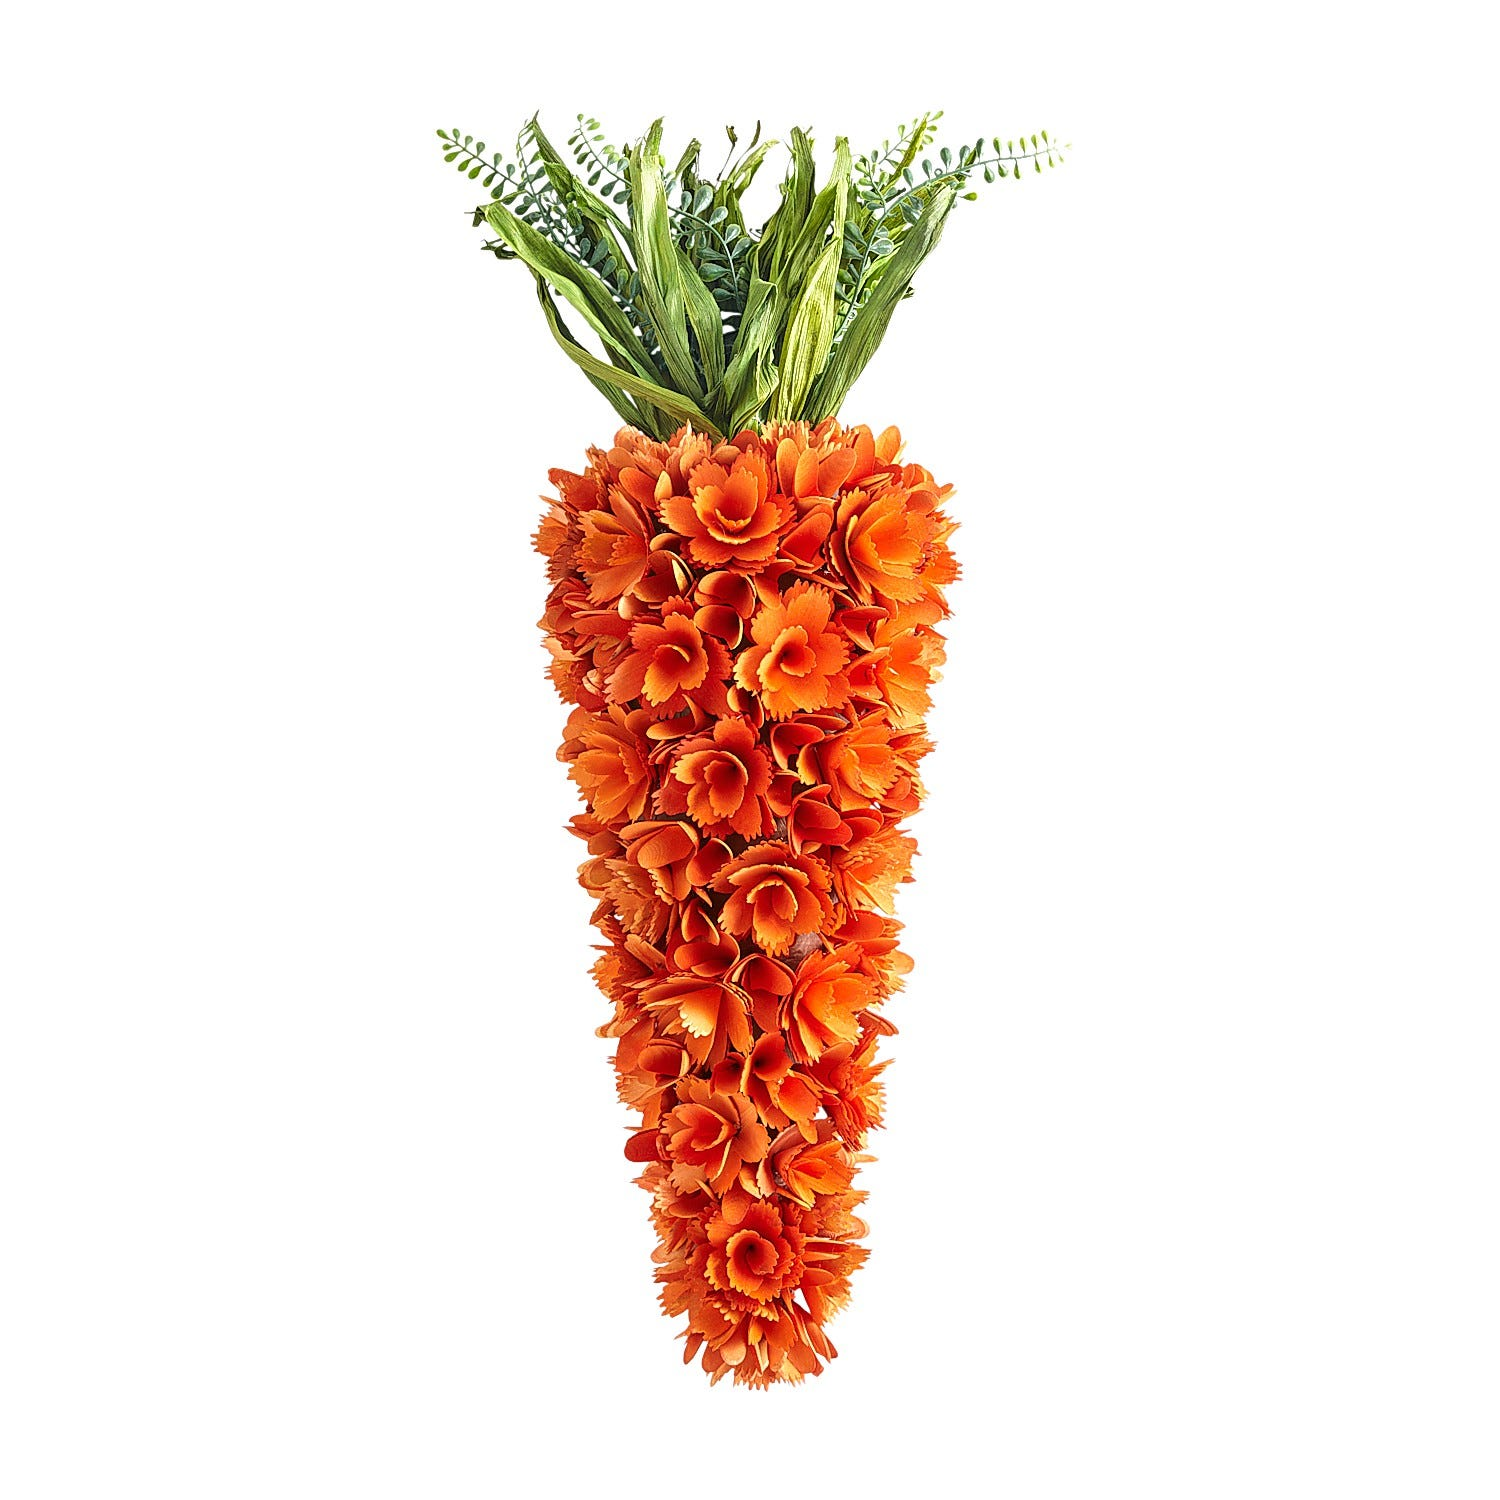 Pier1 Carrot Wreath